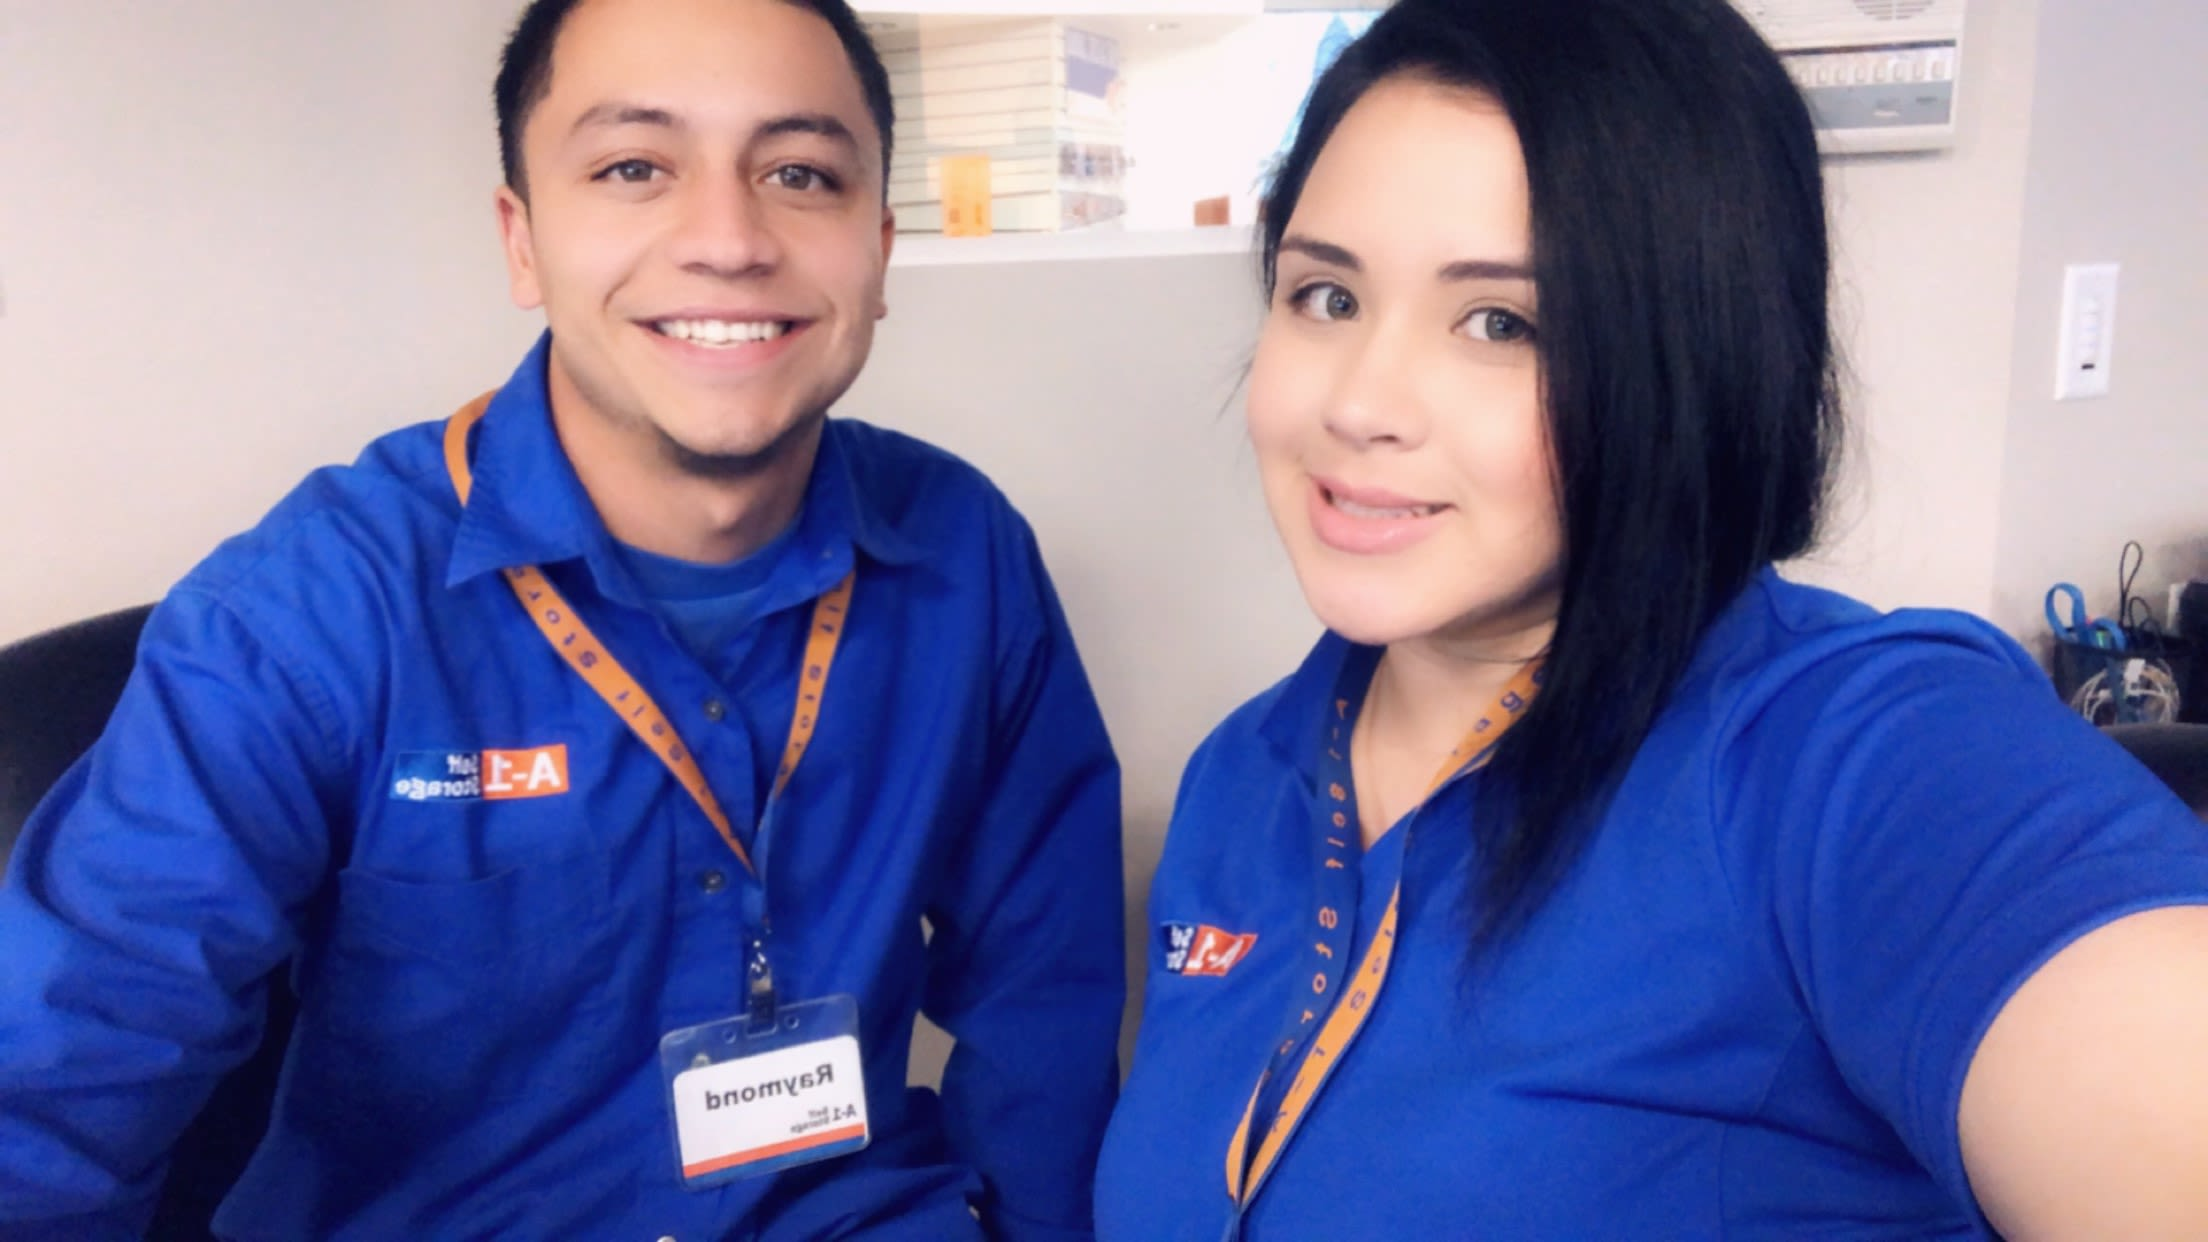 Customer service staff in San Diego, CA | A-1 Self Storage